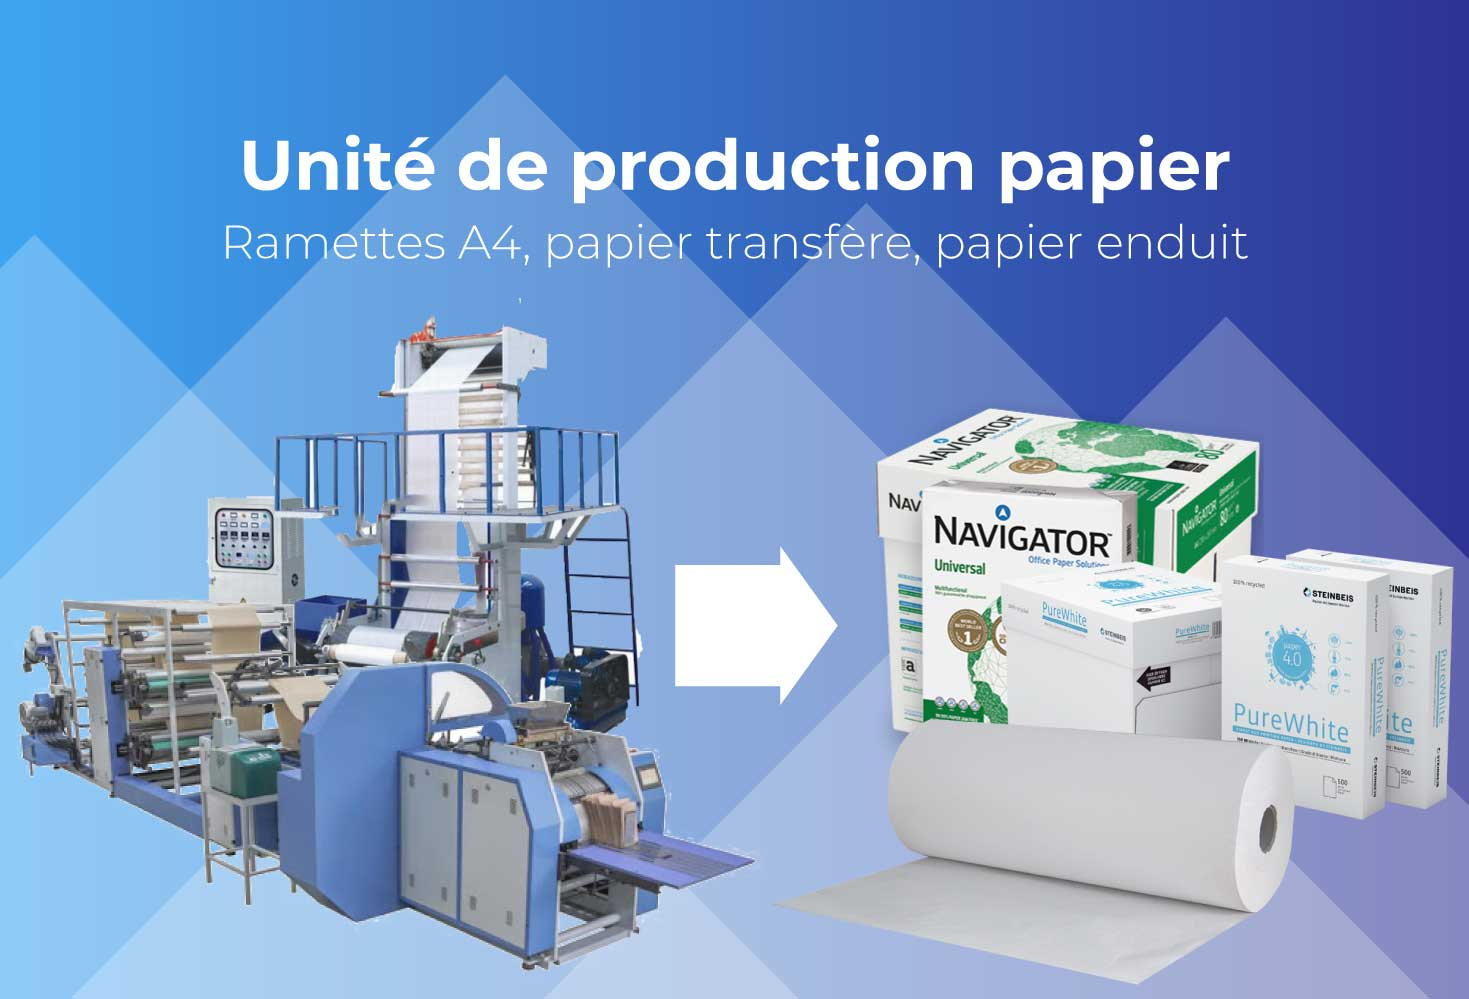 Unité de production de papier